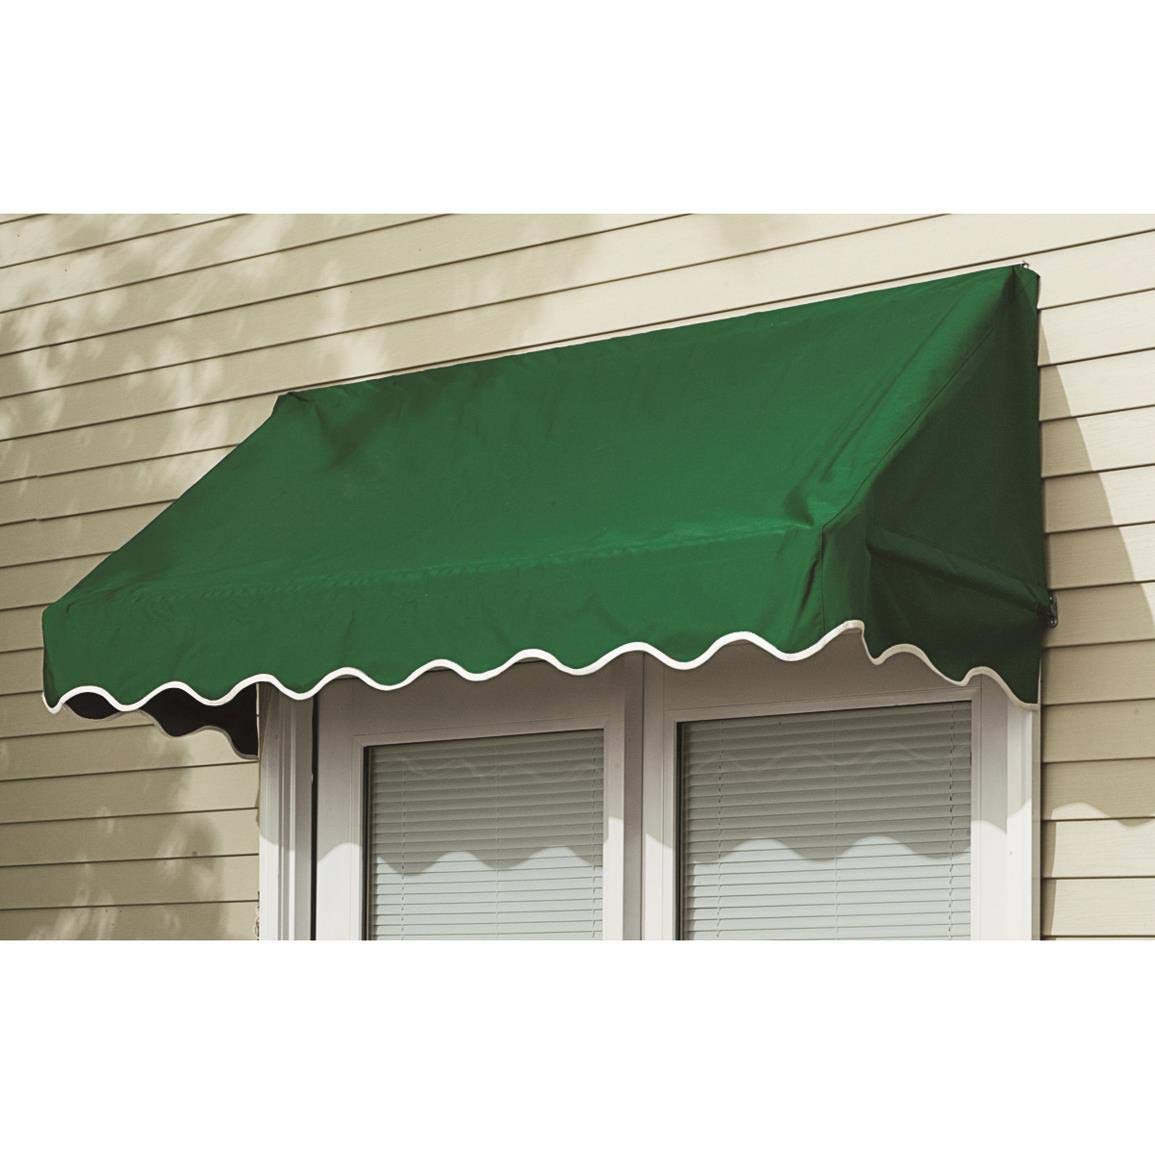 Awnings Screens Amp Accessories